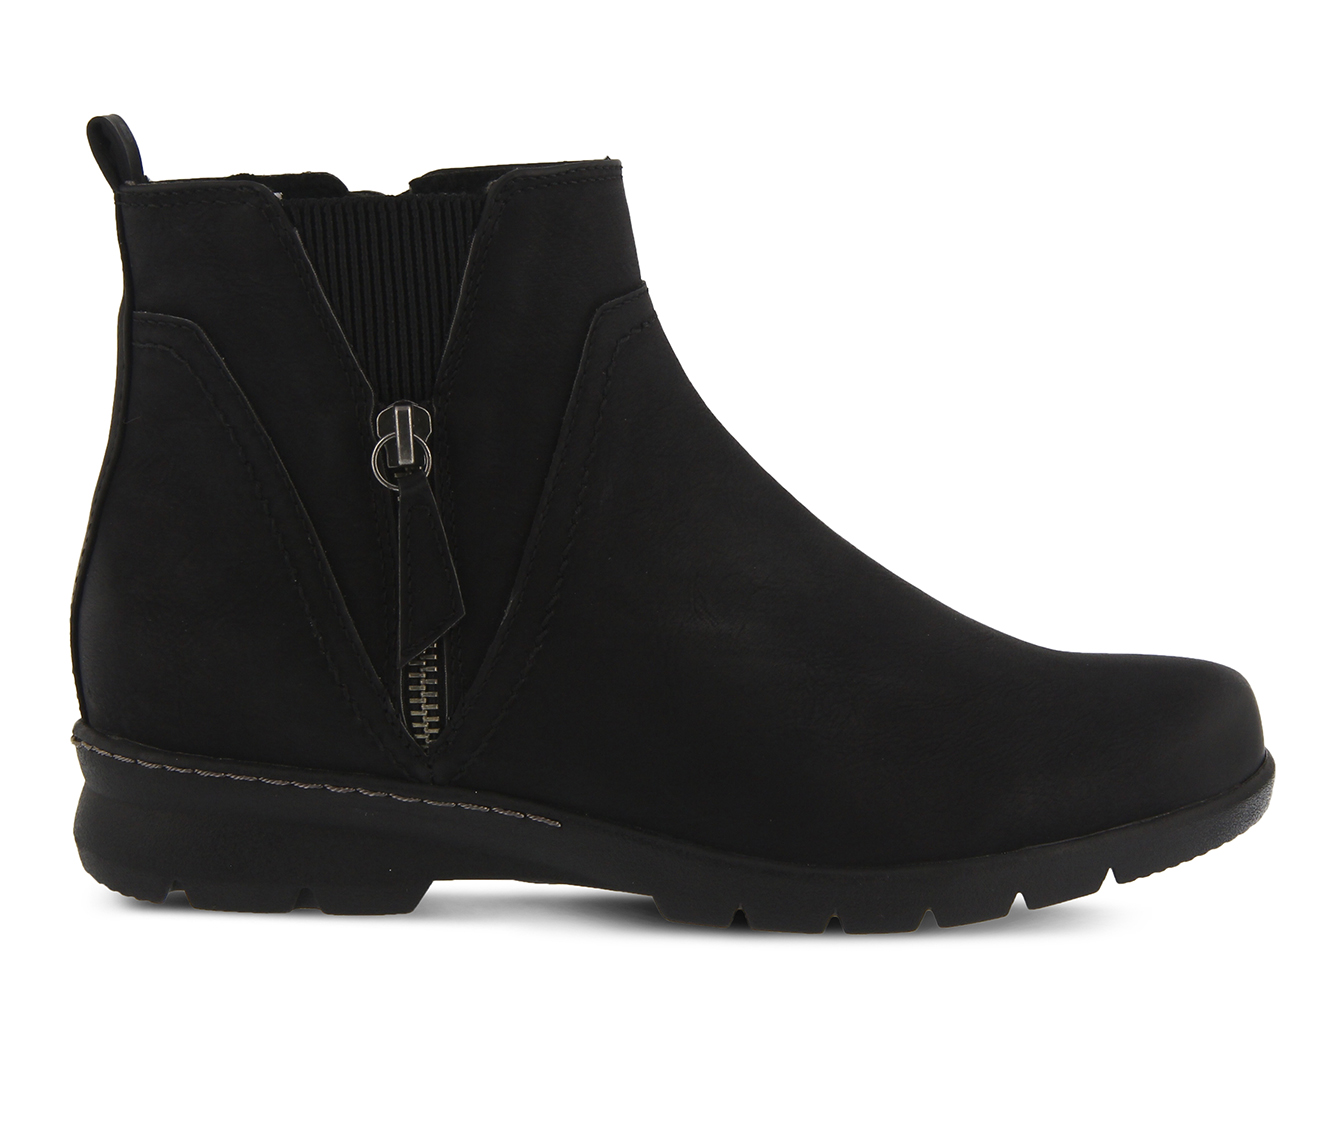 SPRING STEP Yili Women's Boots (Black Faux Leather)